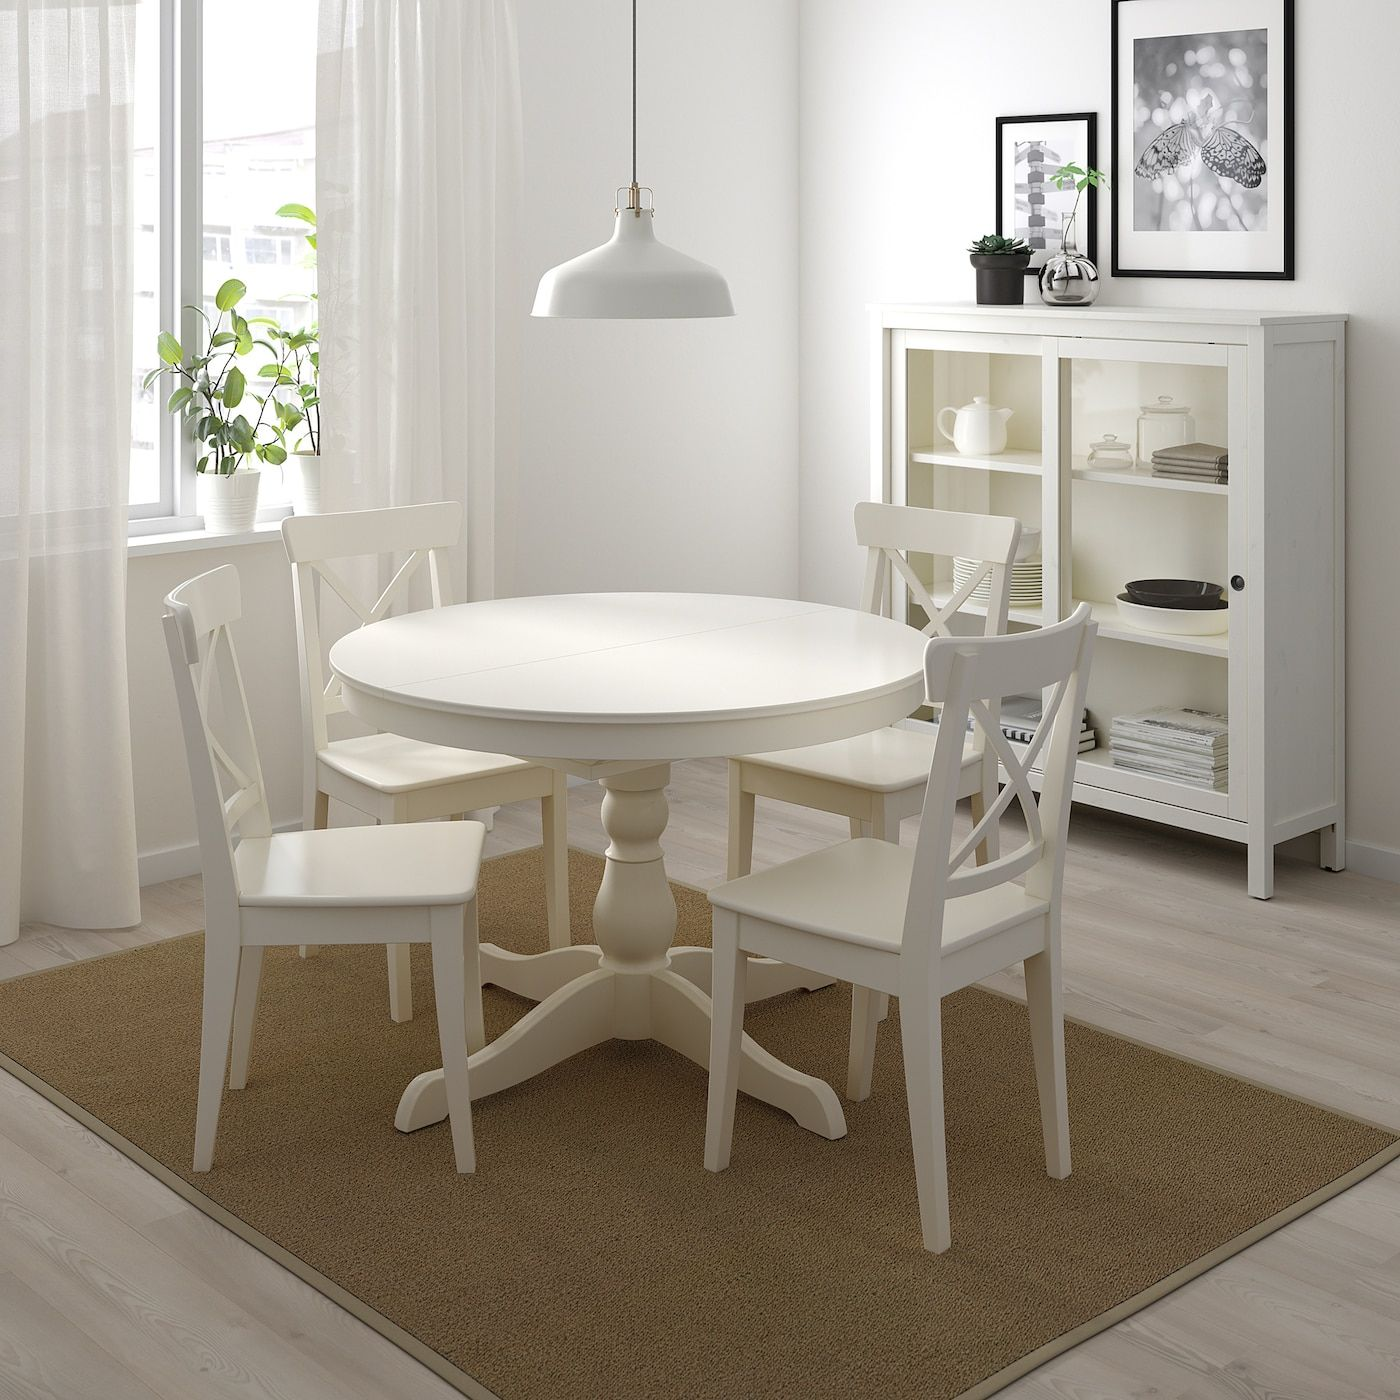 """INGATORP Extendable table white 43 1/4/61 """" in 2020"""